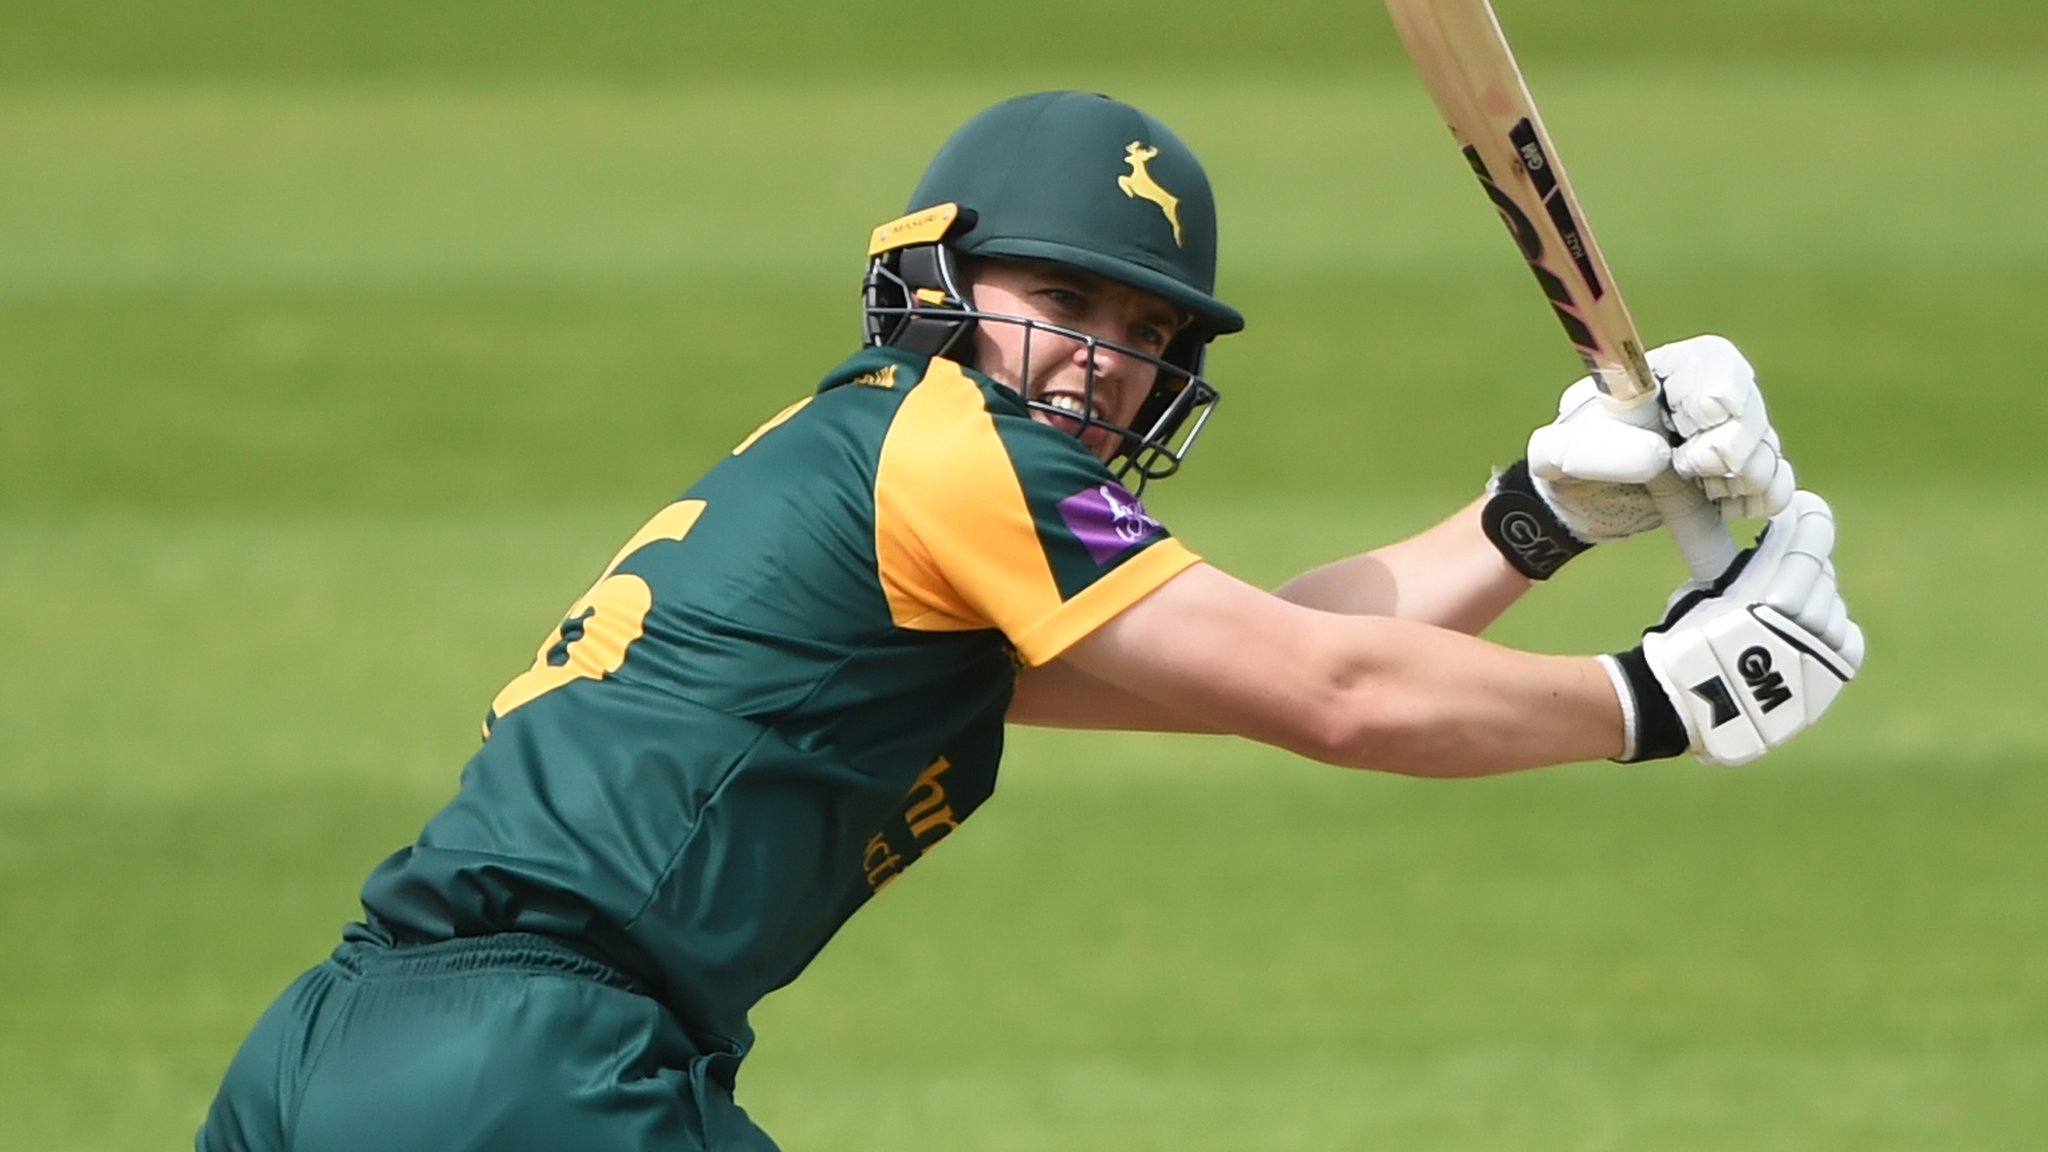 One-Day Cup: Ben Slater century sets up Notts win over Warwickshire